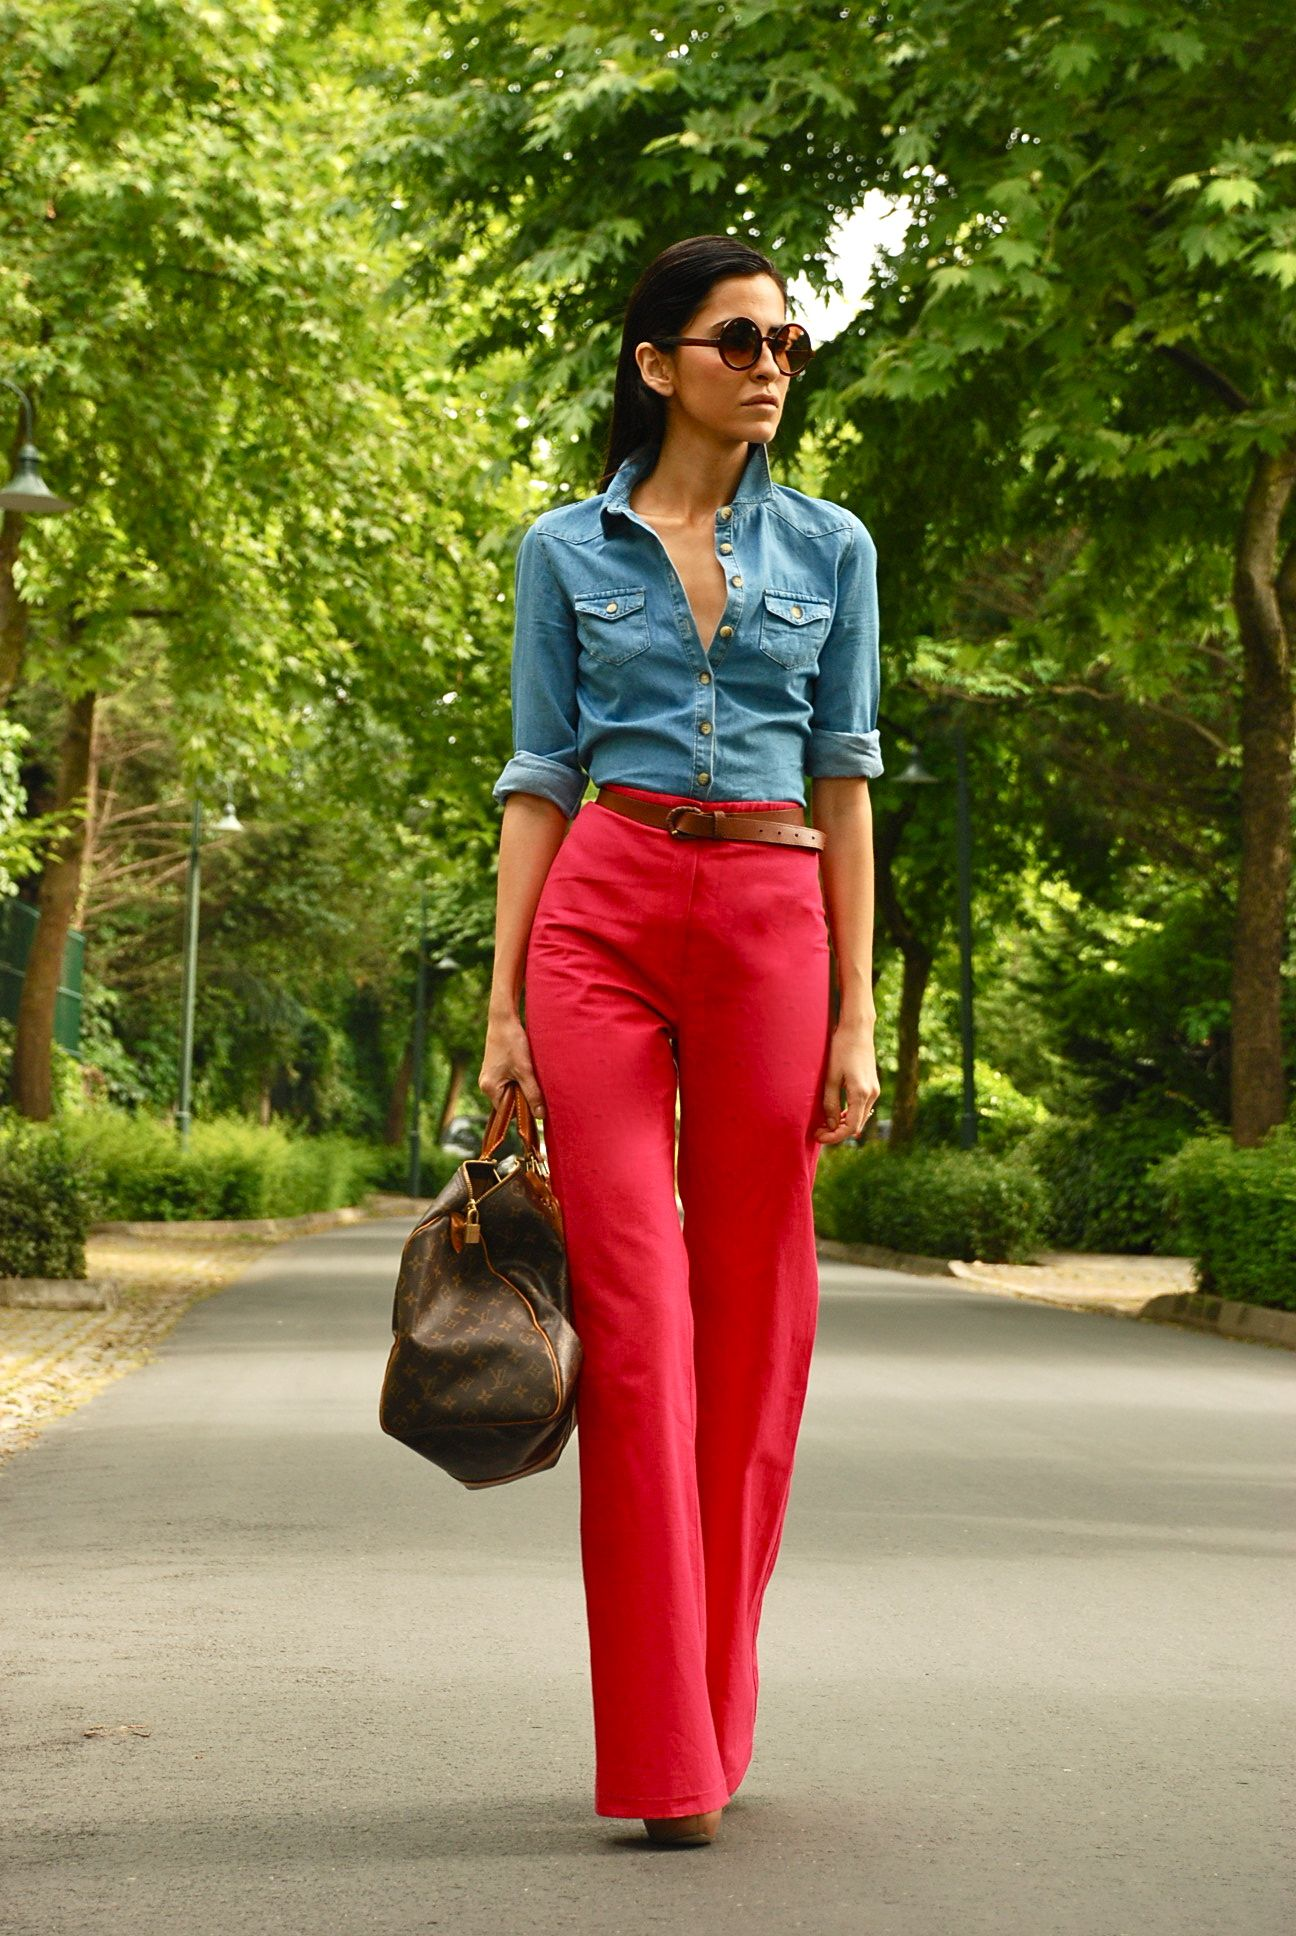 Top ideas for red pants - Chambray Shirt And High Waisted Trousers If I Wore Heels Was An Ectomorph And Wore High Waisted Trousers